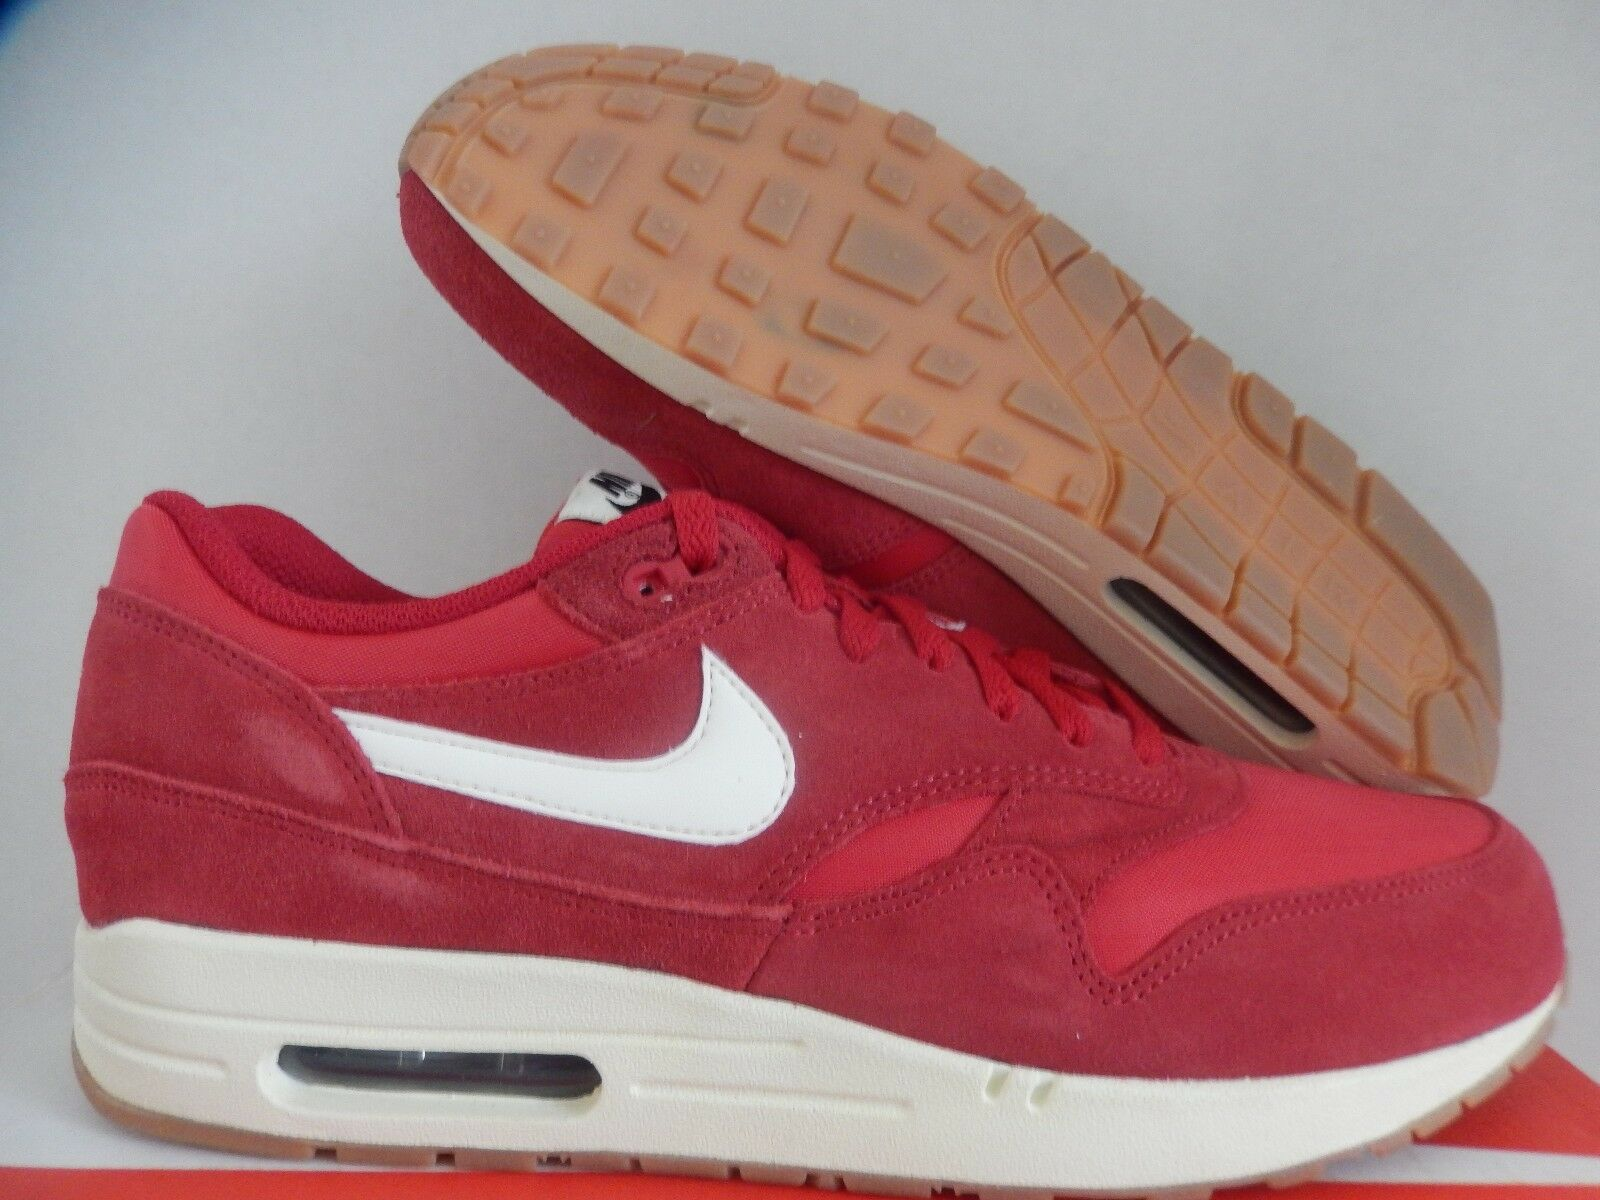 NIKE AIR MAX 1 ESSENTIAL GYM RED-SAIL-BLACK-BLACK SZ 10.5 [537383-611]